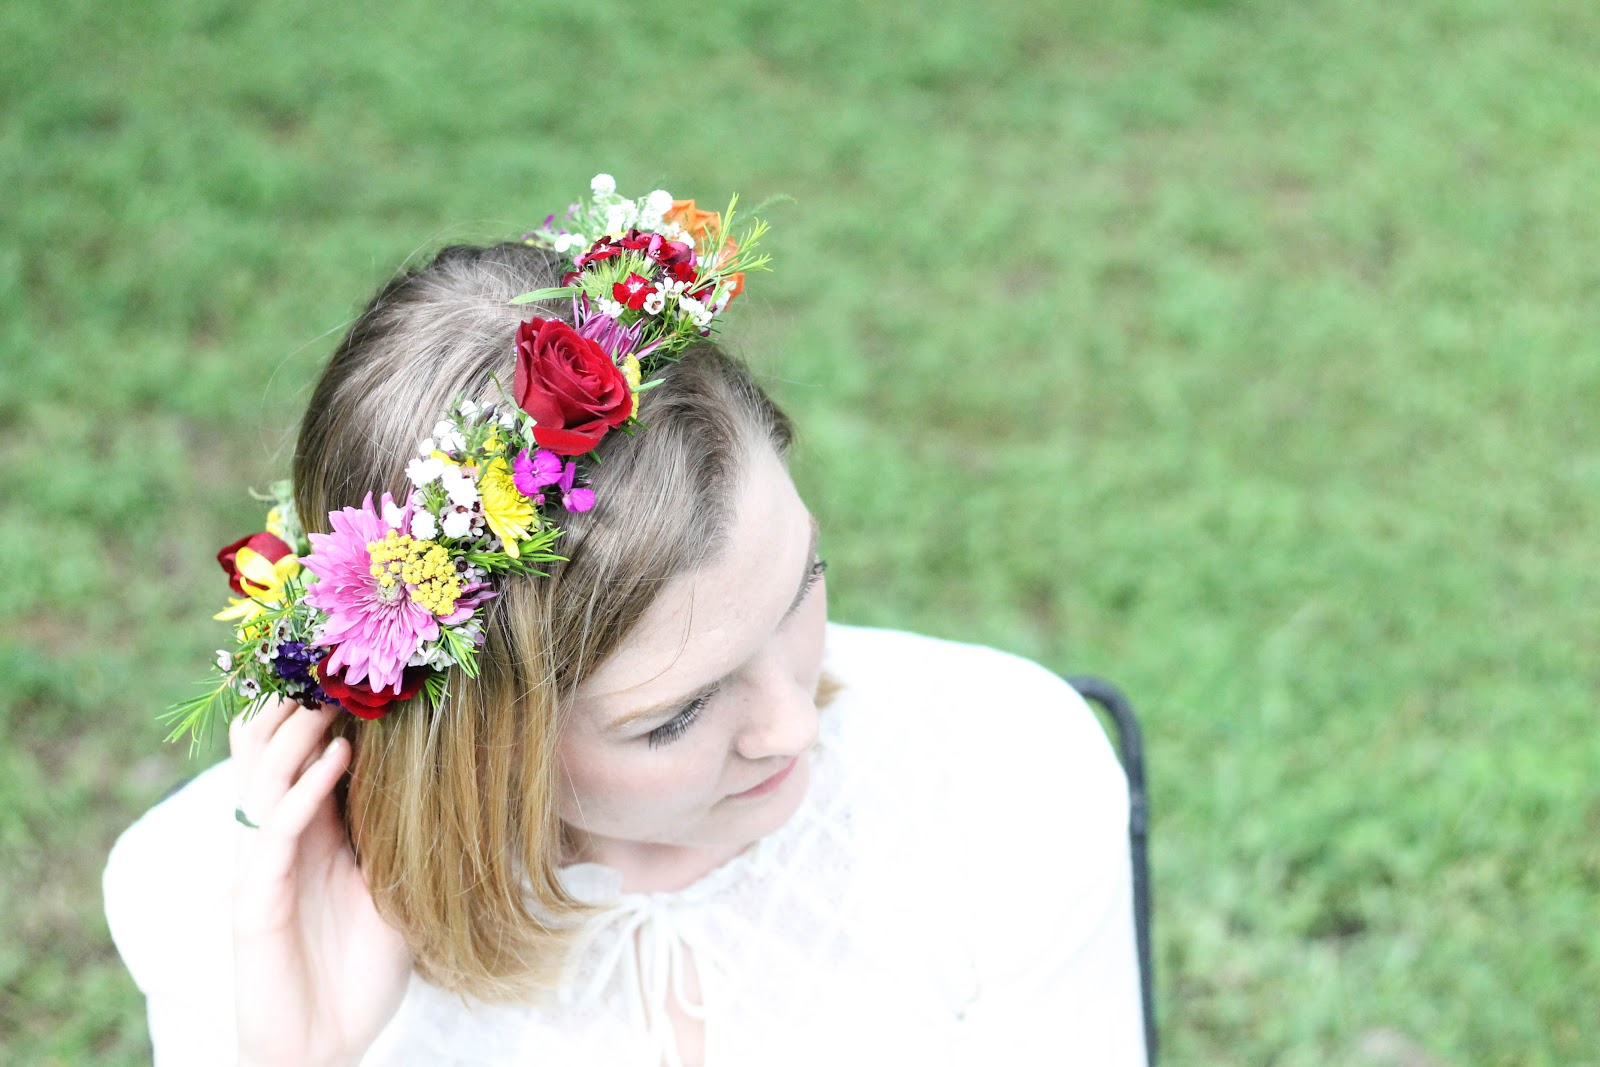 Diy flower crowns minnie muse i hope you all enjoyed this diyybe there will be more diy posts in the future here but for now enjoy the sheer beauty of flowers and flower crowns izmirmasajfo Gallery